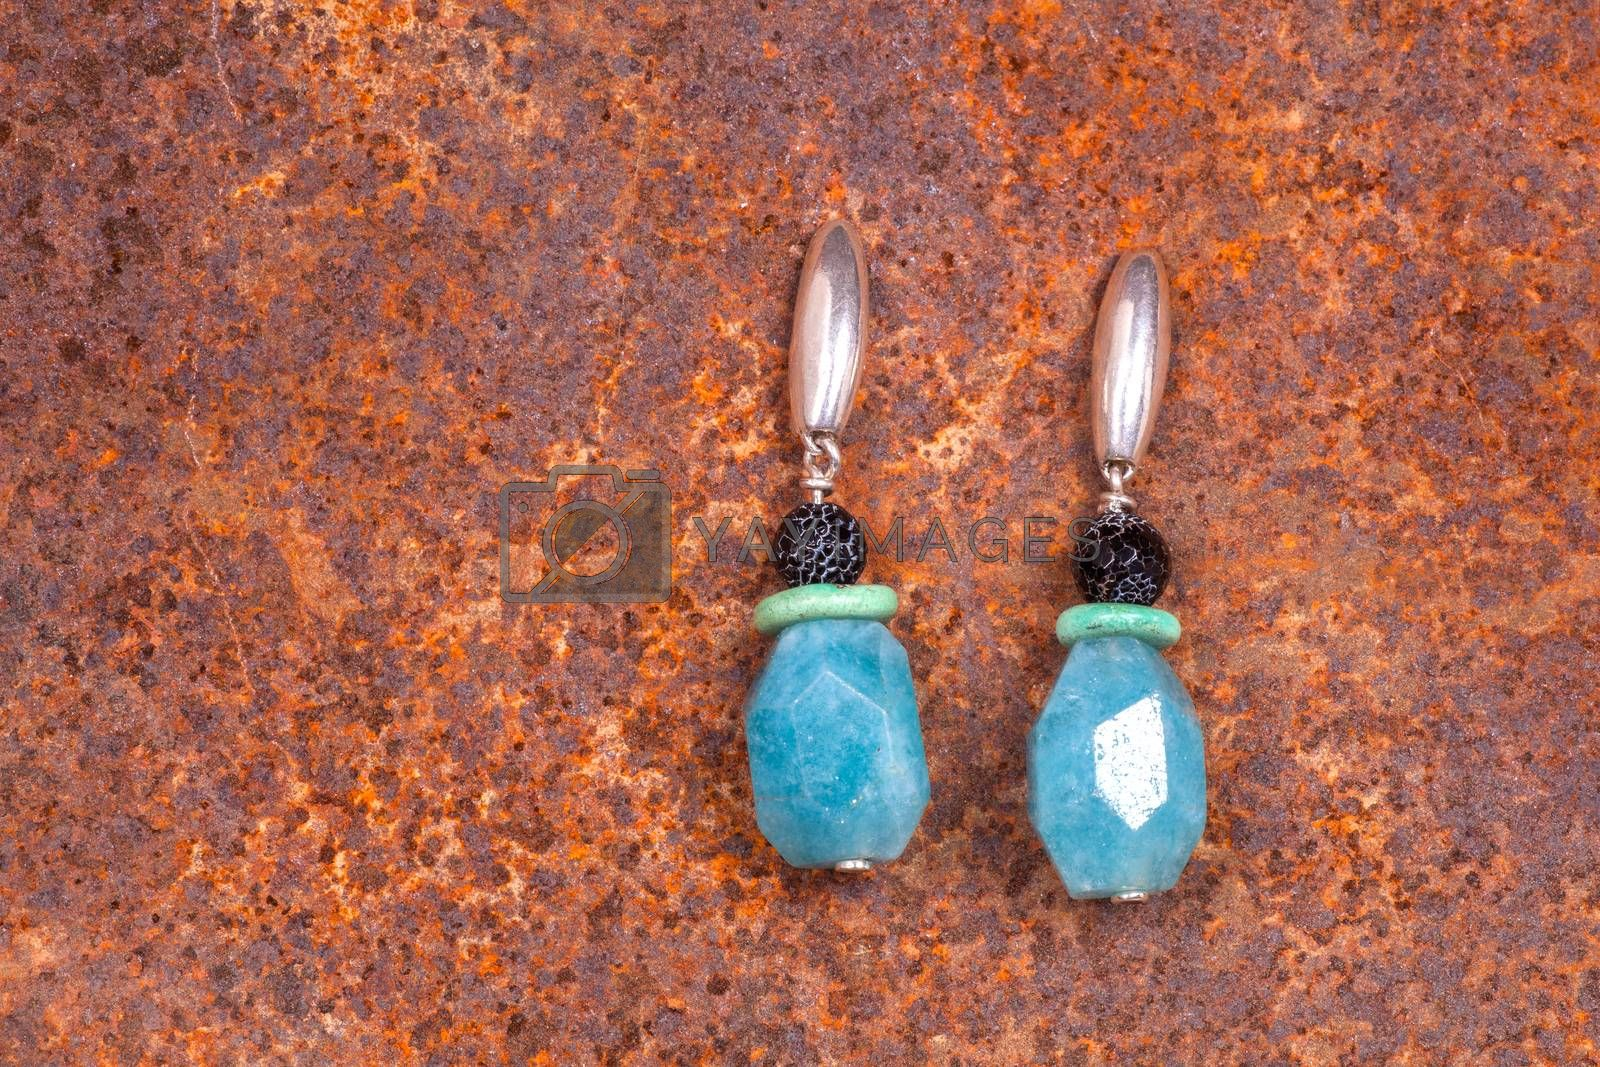 Close up of chalcedony earrings on rusty iron, manufactured by Ornella Salamone